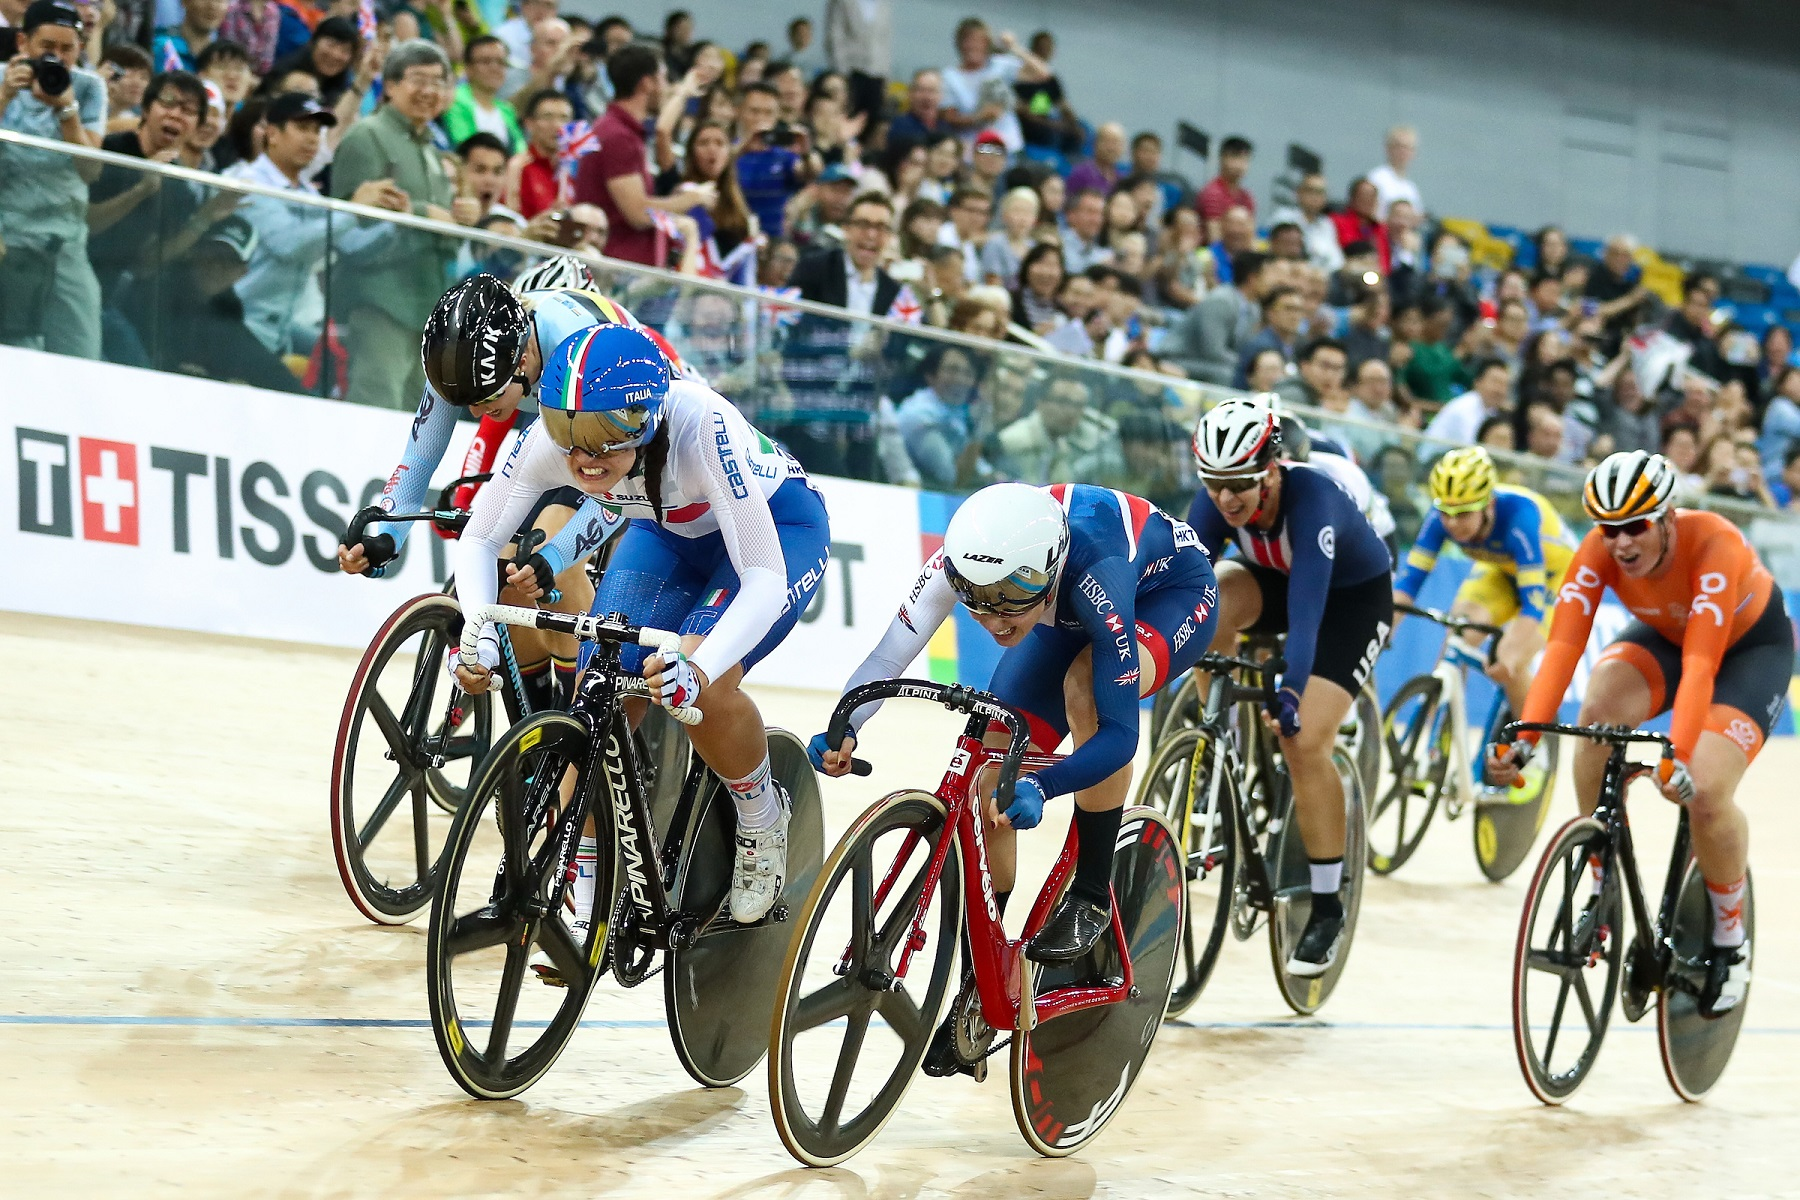 TrackCycling20173